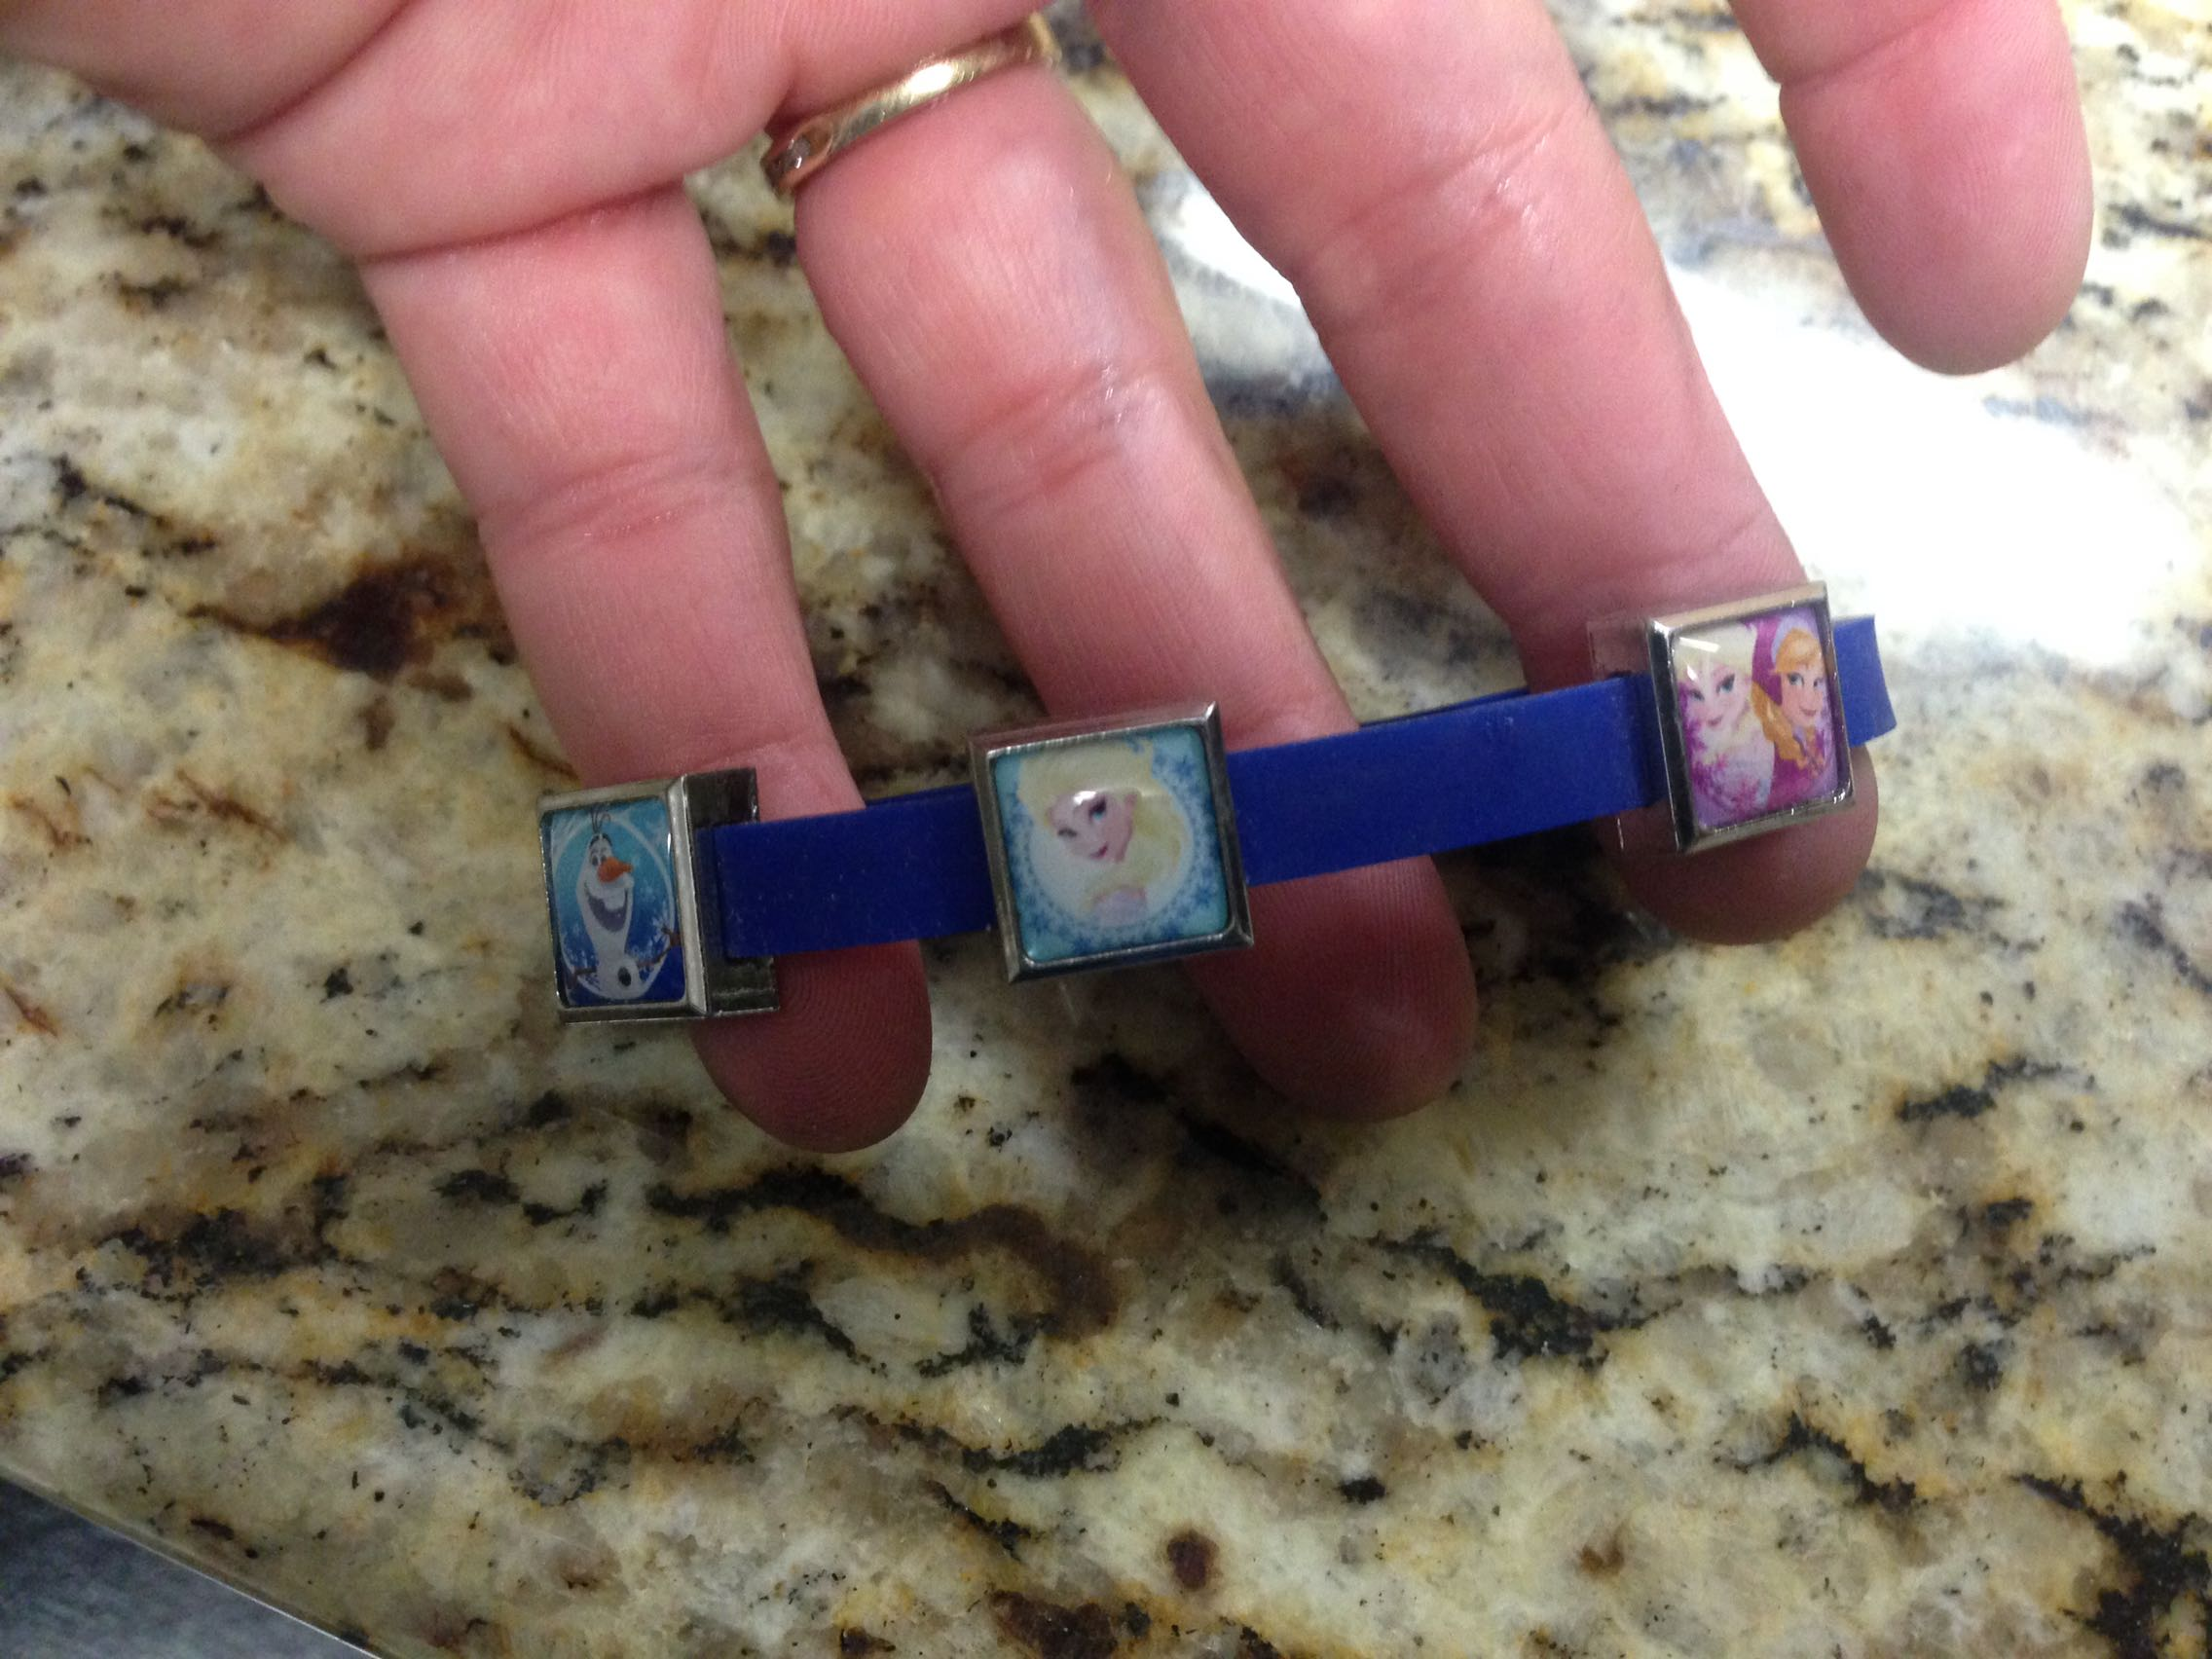 Disney's Frozen rubber bracelet with 5 metal charms - Porch pickup